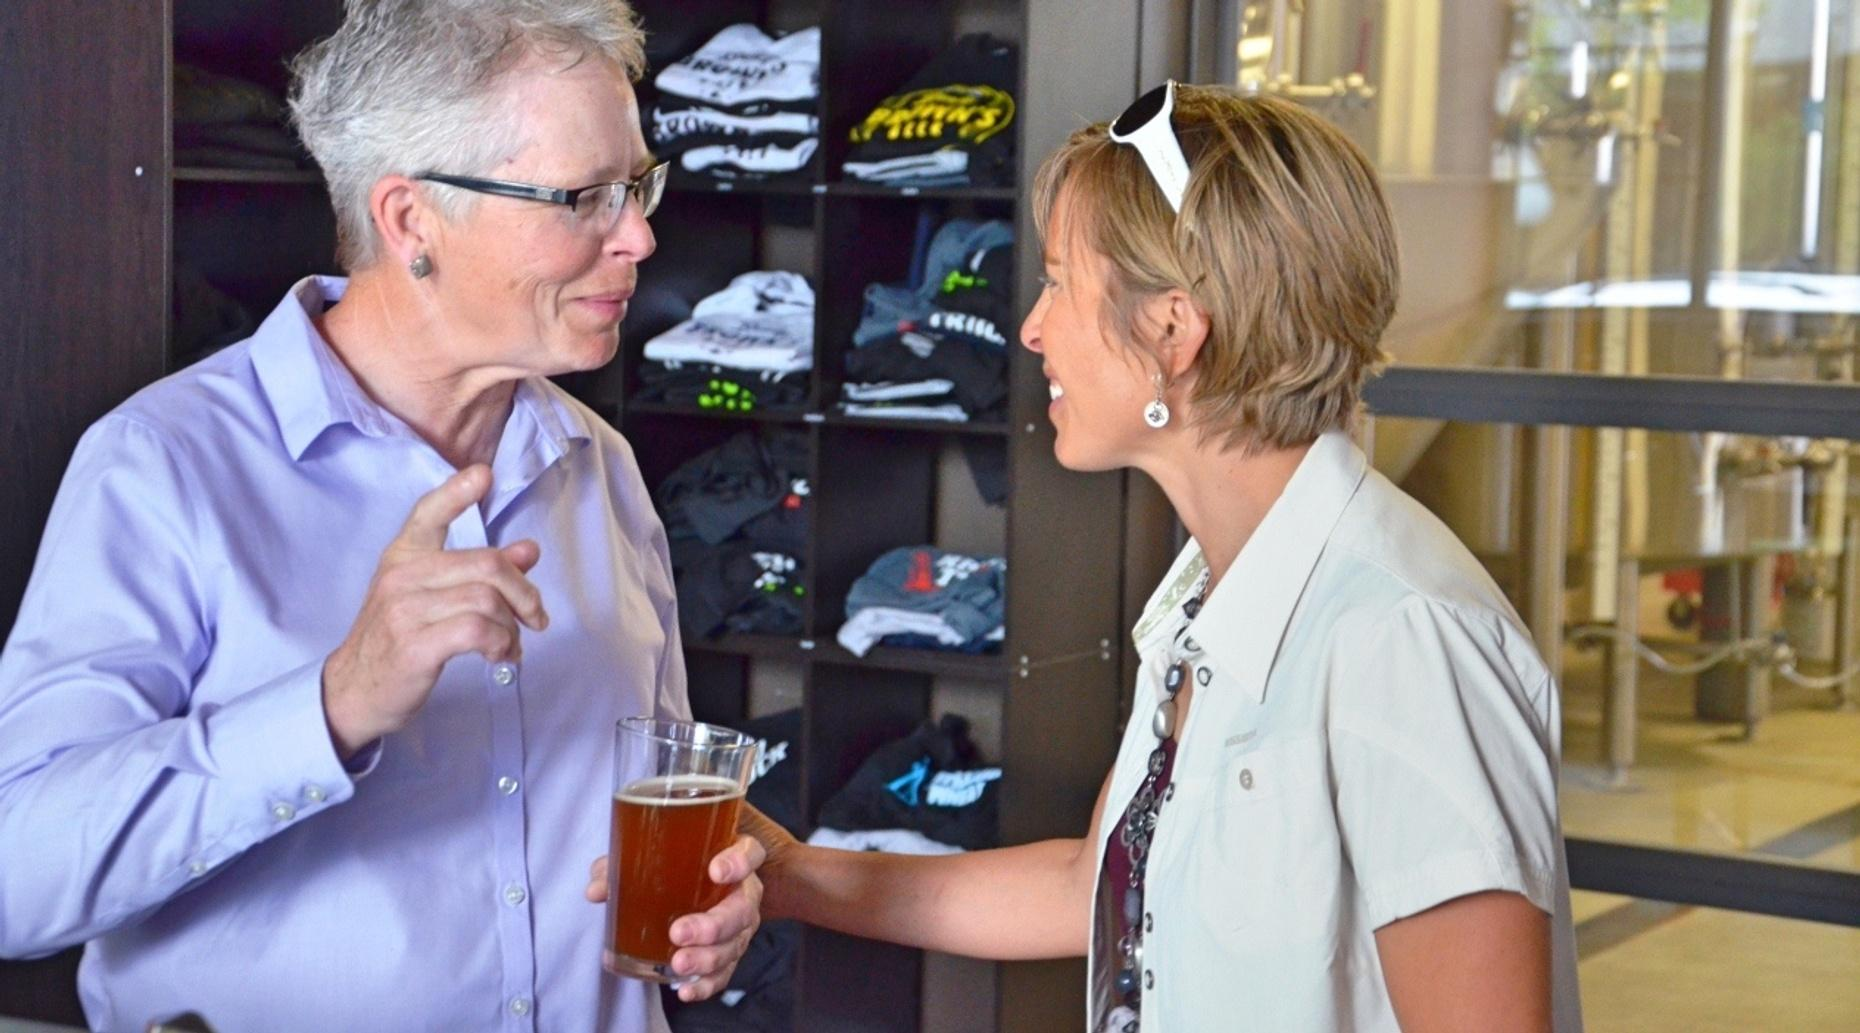 Tour of Local Breweries with Pizza in New Braunfels